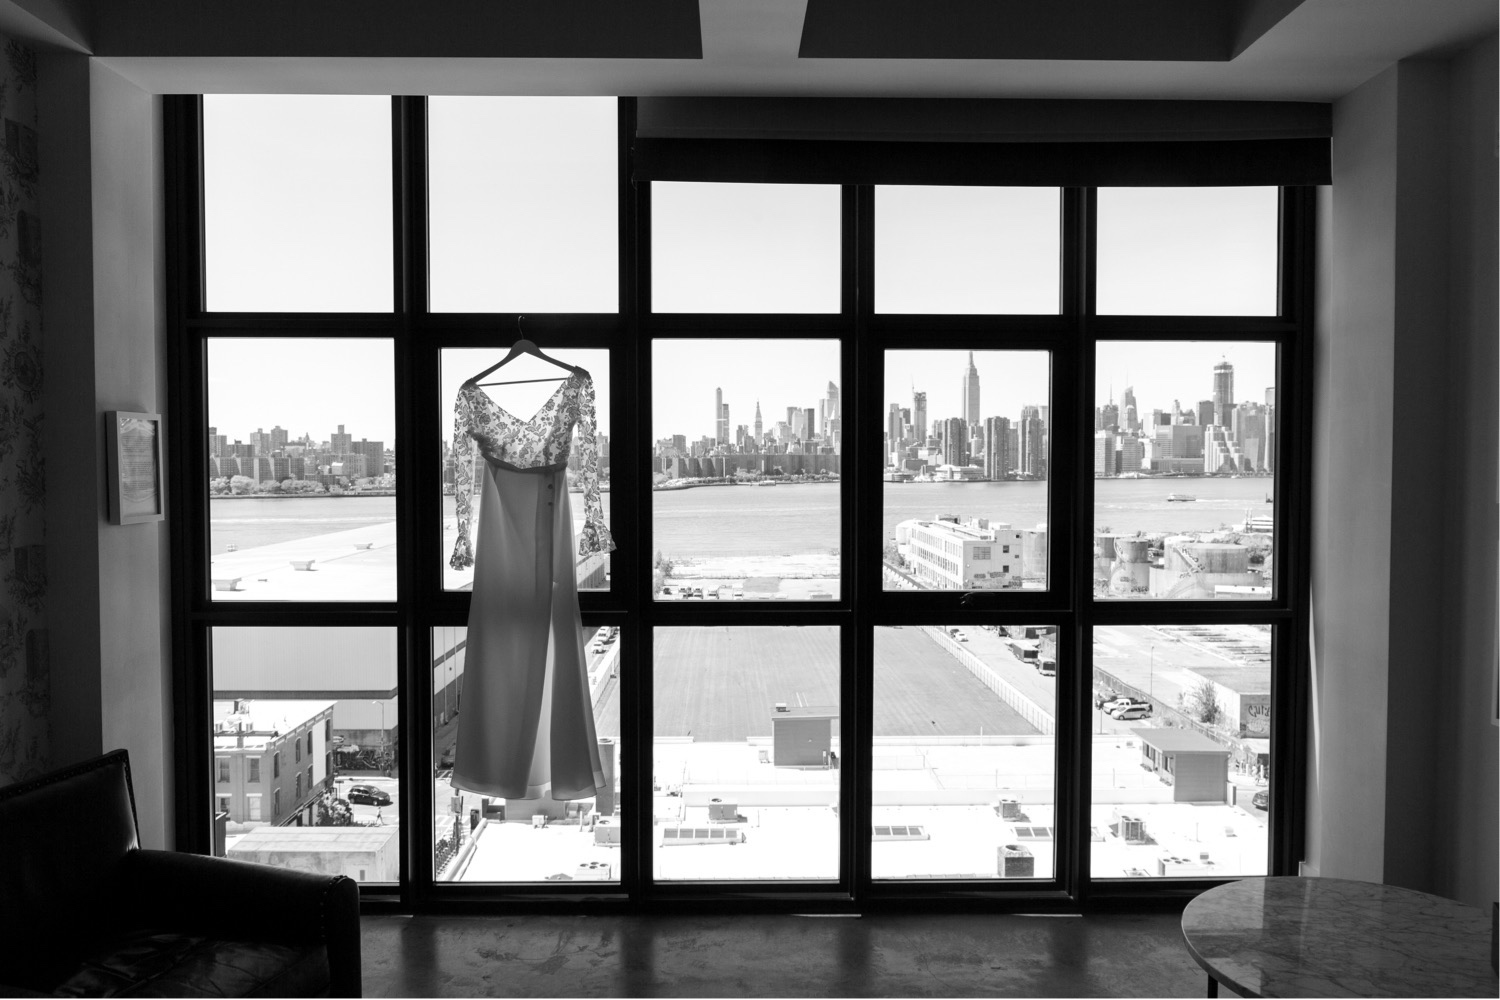 the bride's wedding dress a Rime Arodaky Paris wedding gown hanging on the wythe hotel windows with the manhattan new york city skyline in the distance